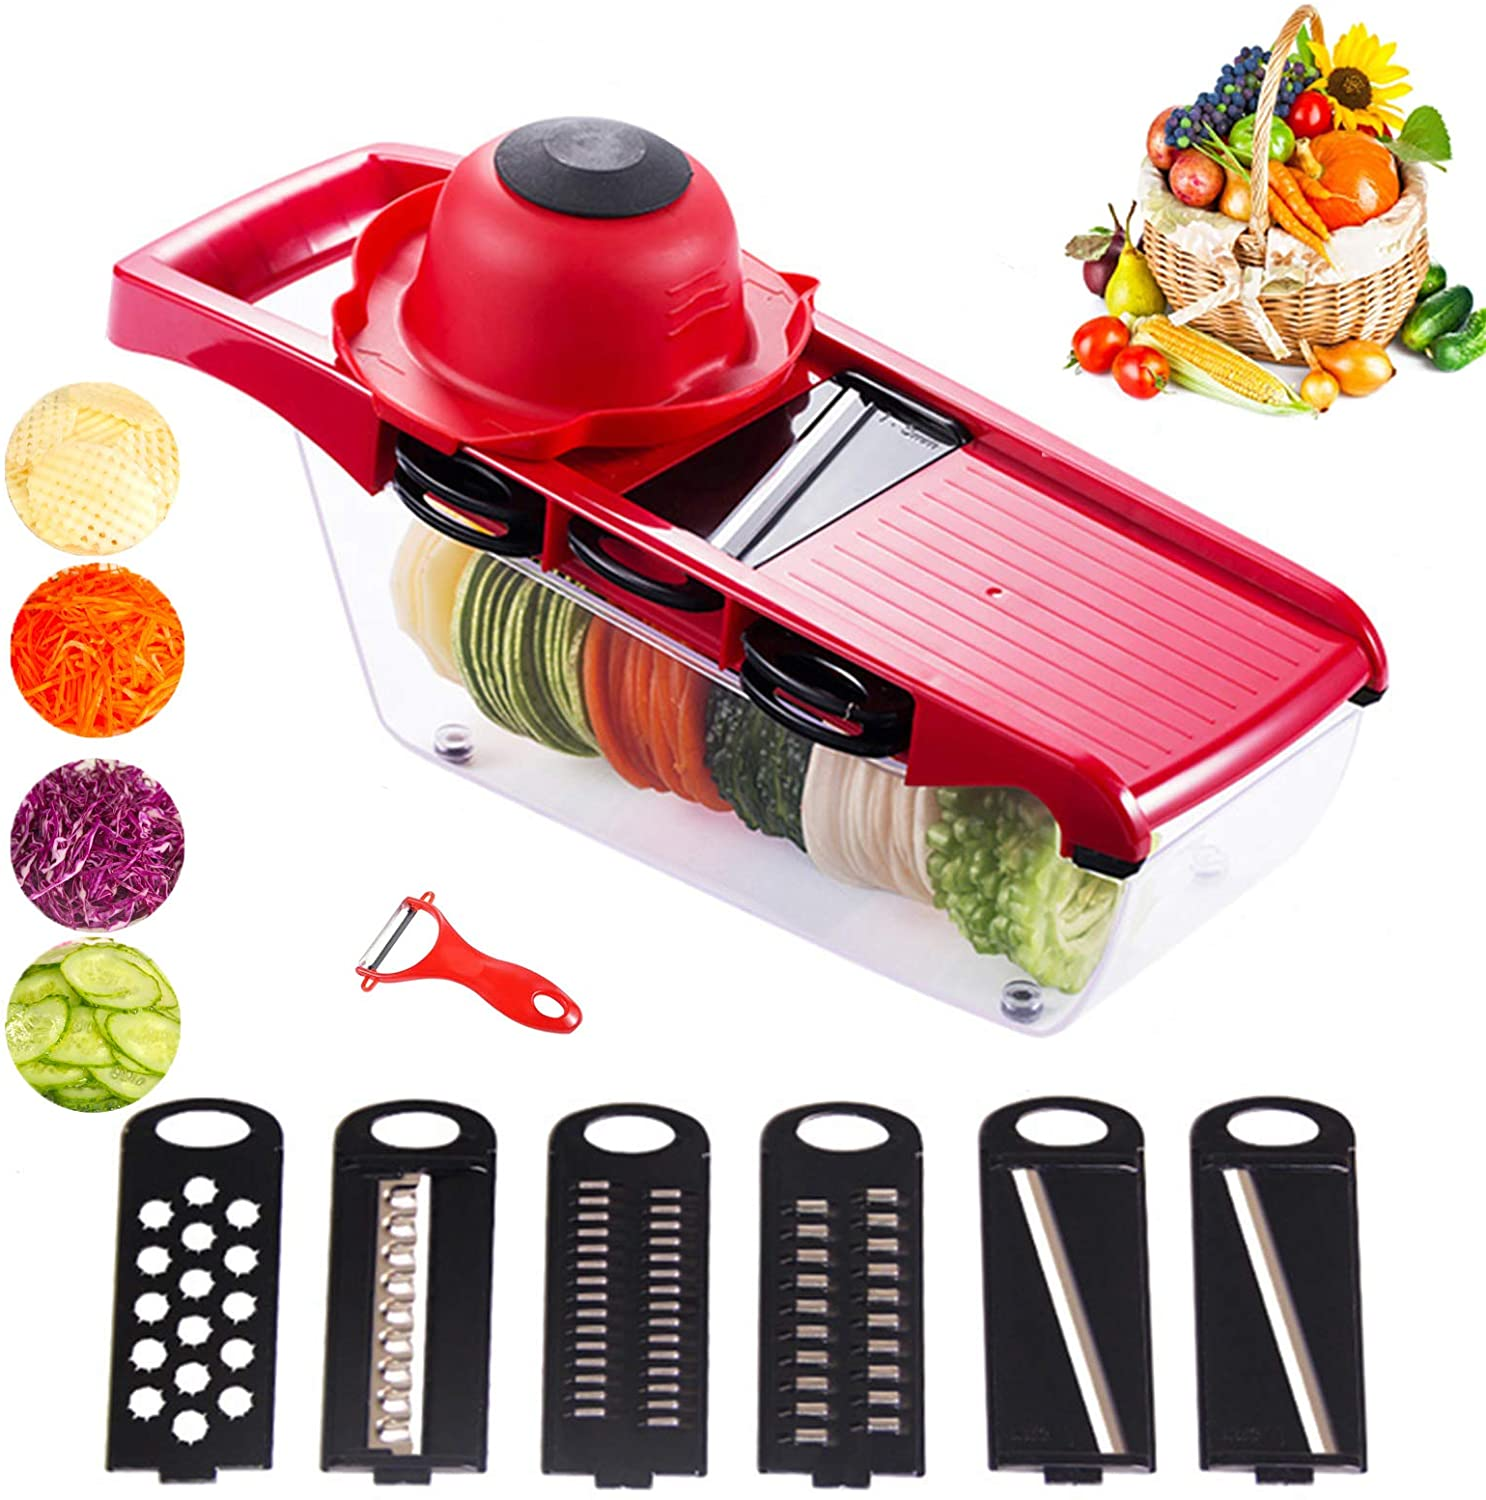 Multifunctionele Vegetable Cutter With Steel Blade Mandoline Slicer Potato Peeler Carrot Cheese Grater Kitchen Accessories Tools